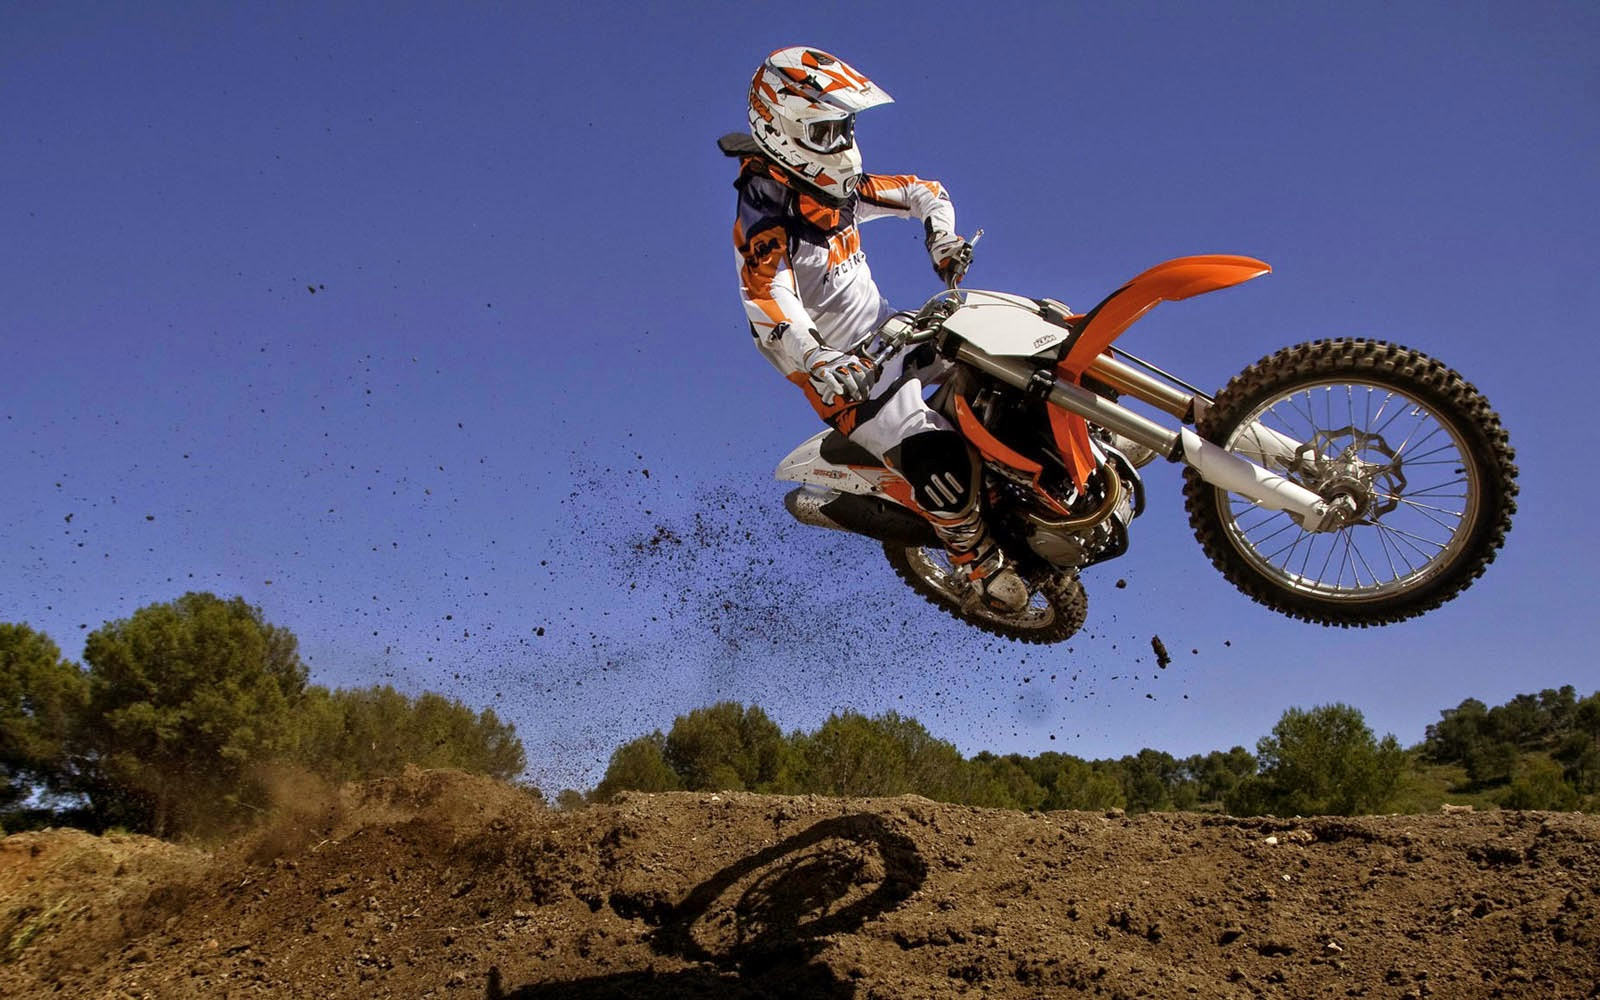 Tag KTM 350 SX F Wallpapers Backgrounds Photos Imagesand Pictures 1600x1000